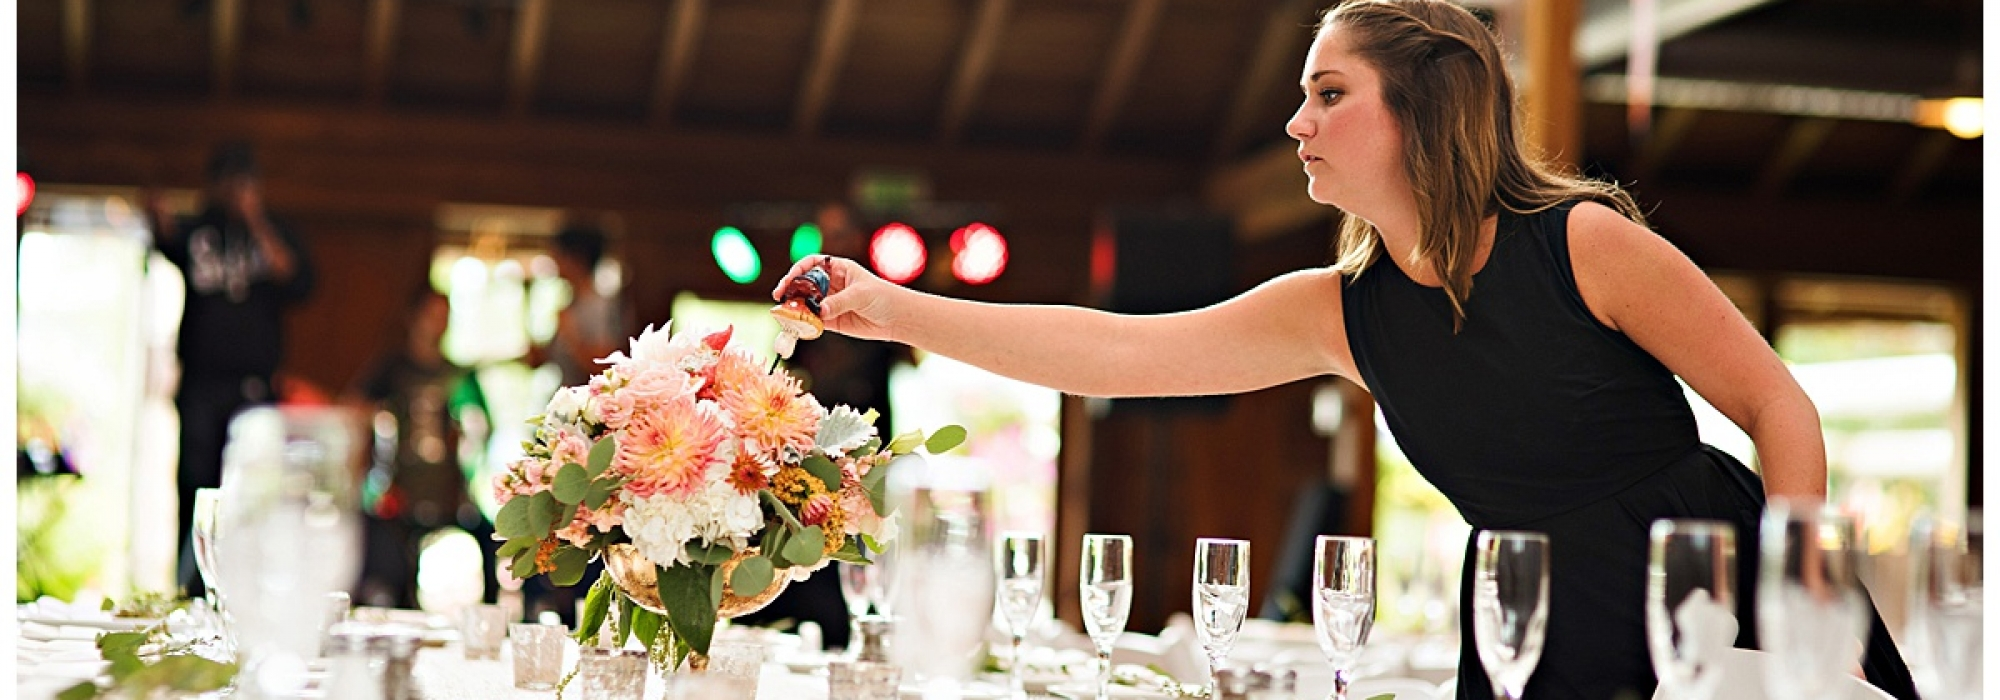 Portland wedding planner Bridget Forster putting the finishing touches on a centerpiece at a wedding | Photo by Barbie Hull Photography